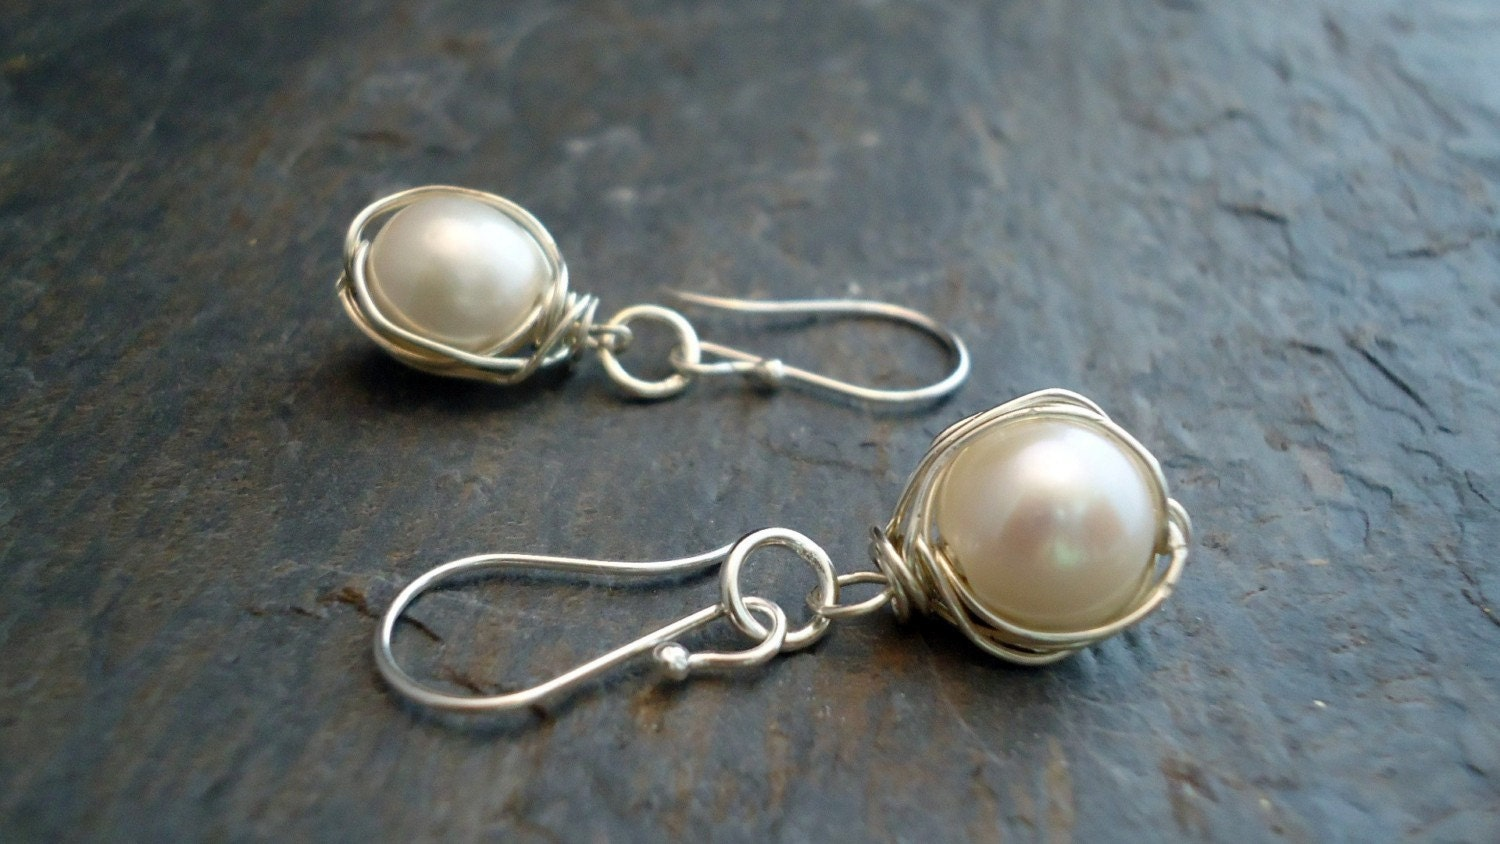 Pearls,wrapped,in,sterling,silver,earrings,Jewelry,Earrings,sterling_earrings,pearl_earrings,wire_wrapped,wrapped_pearls,wire_work,sterling_silver,ocean,bridal_gifts,wrap_wire_earrings,wrap_wire_pearls,wrap_wire_jewelry,pea_pod,sterling silver,freshwater pearls